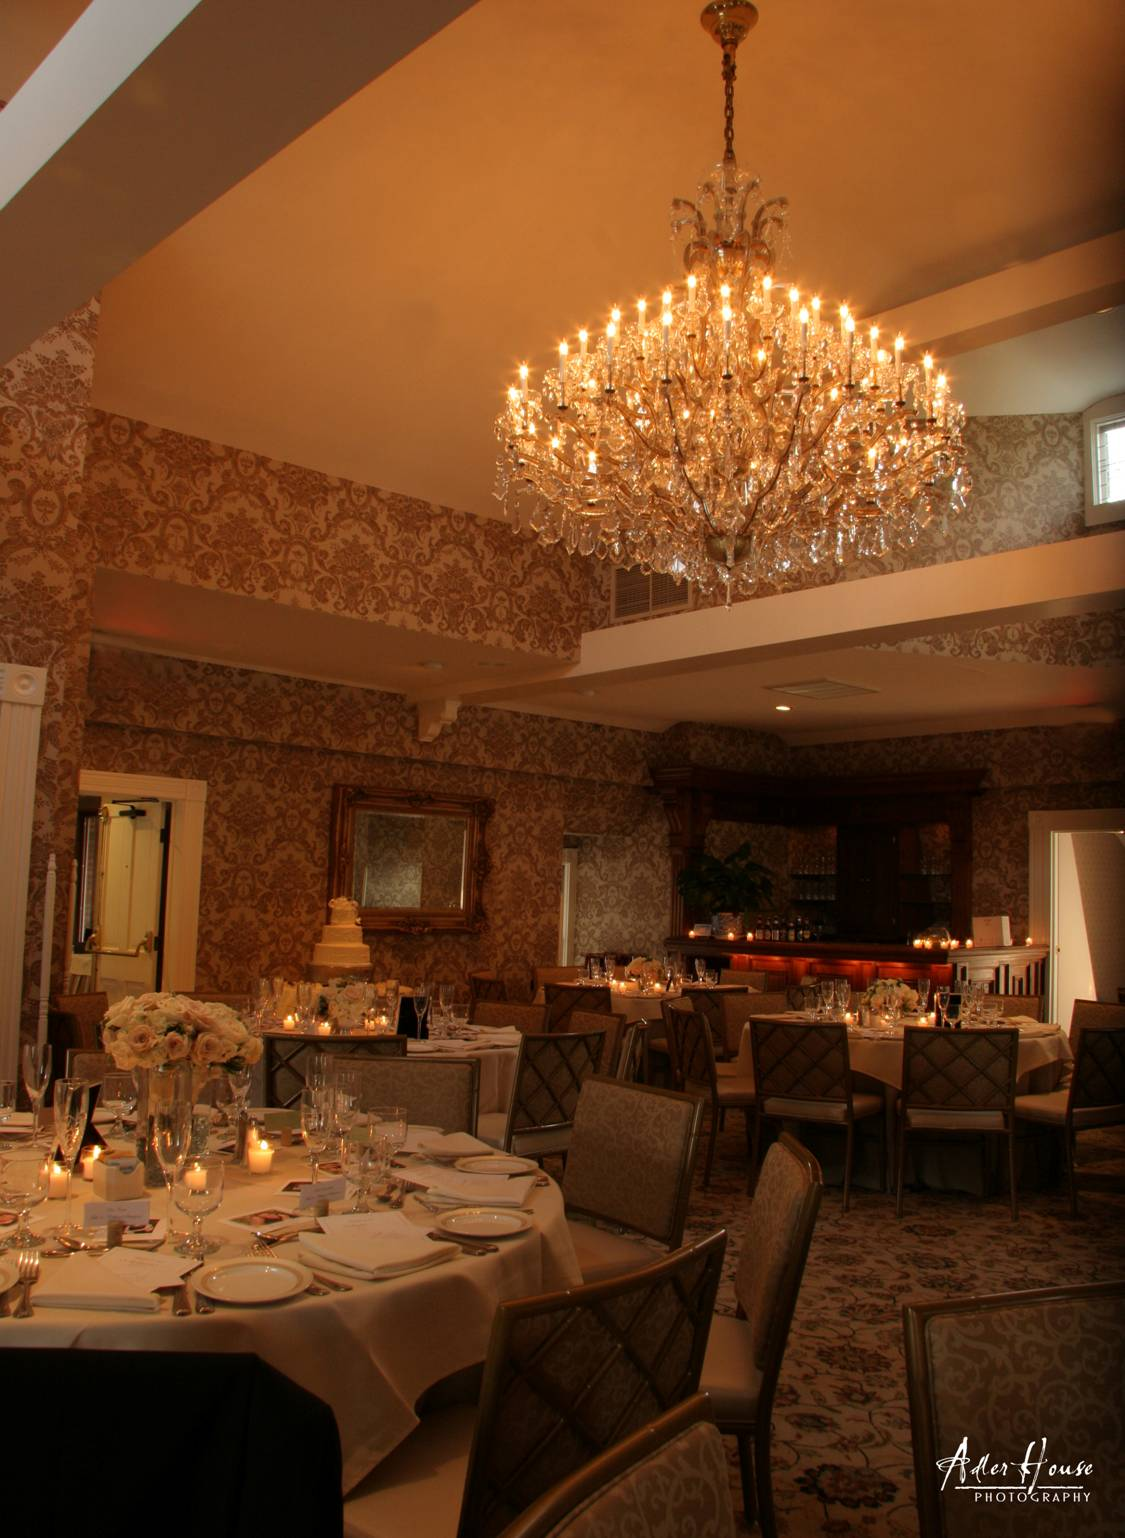 The Van Loon Ballroom banquet room